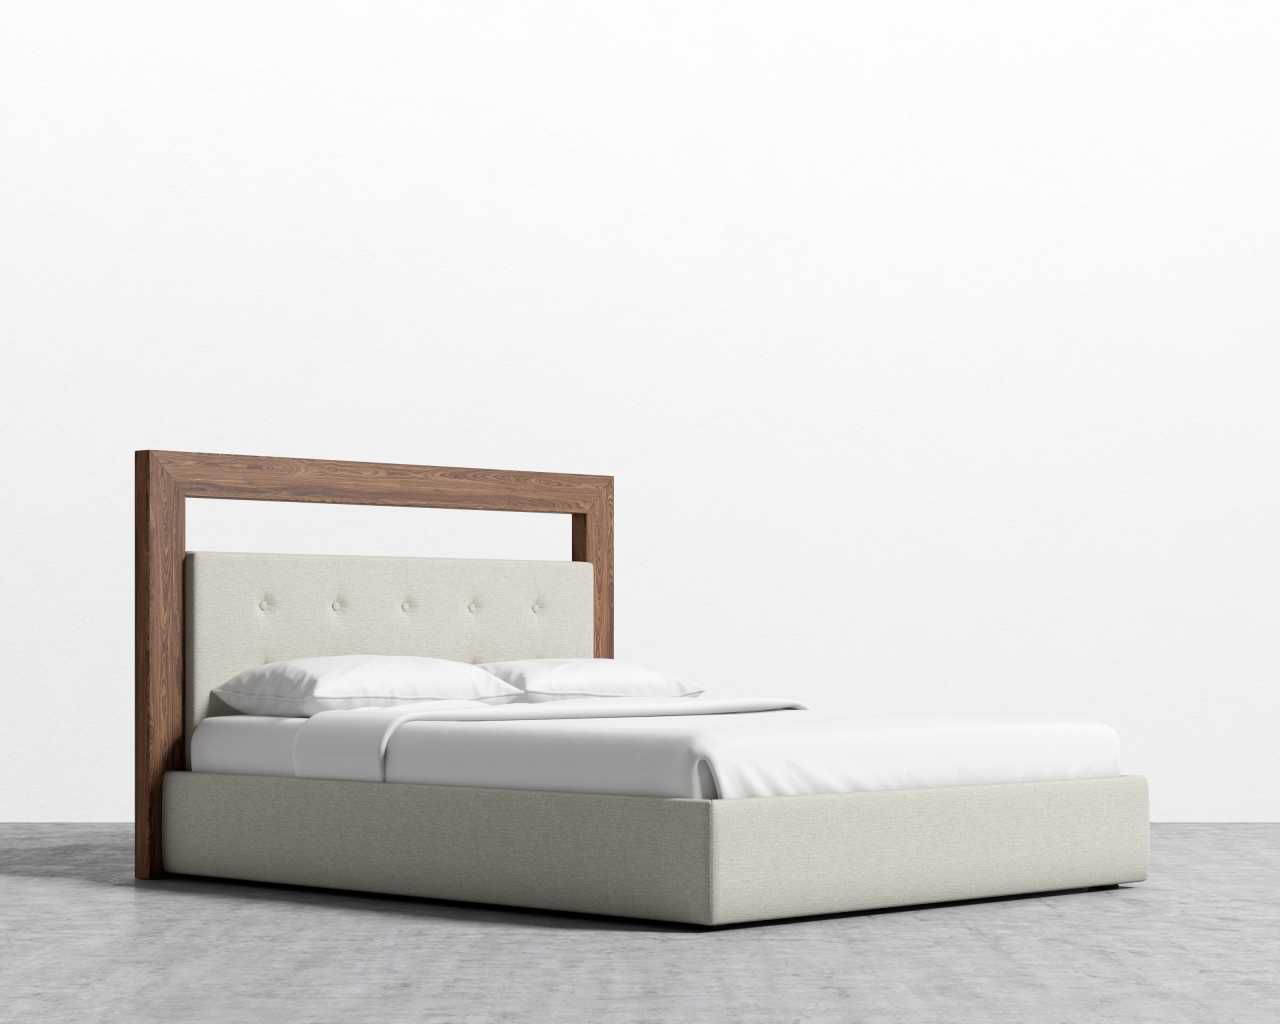 Rove Concepts Chloe Bed